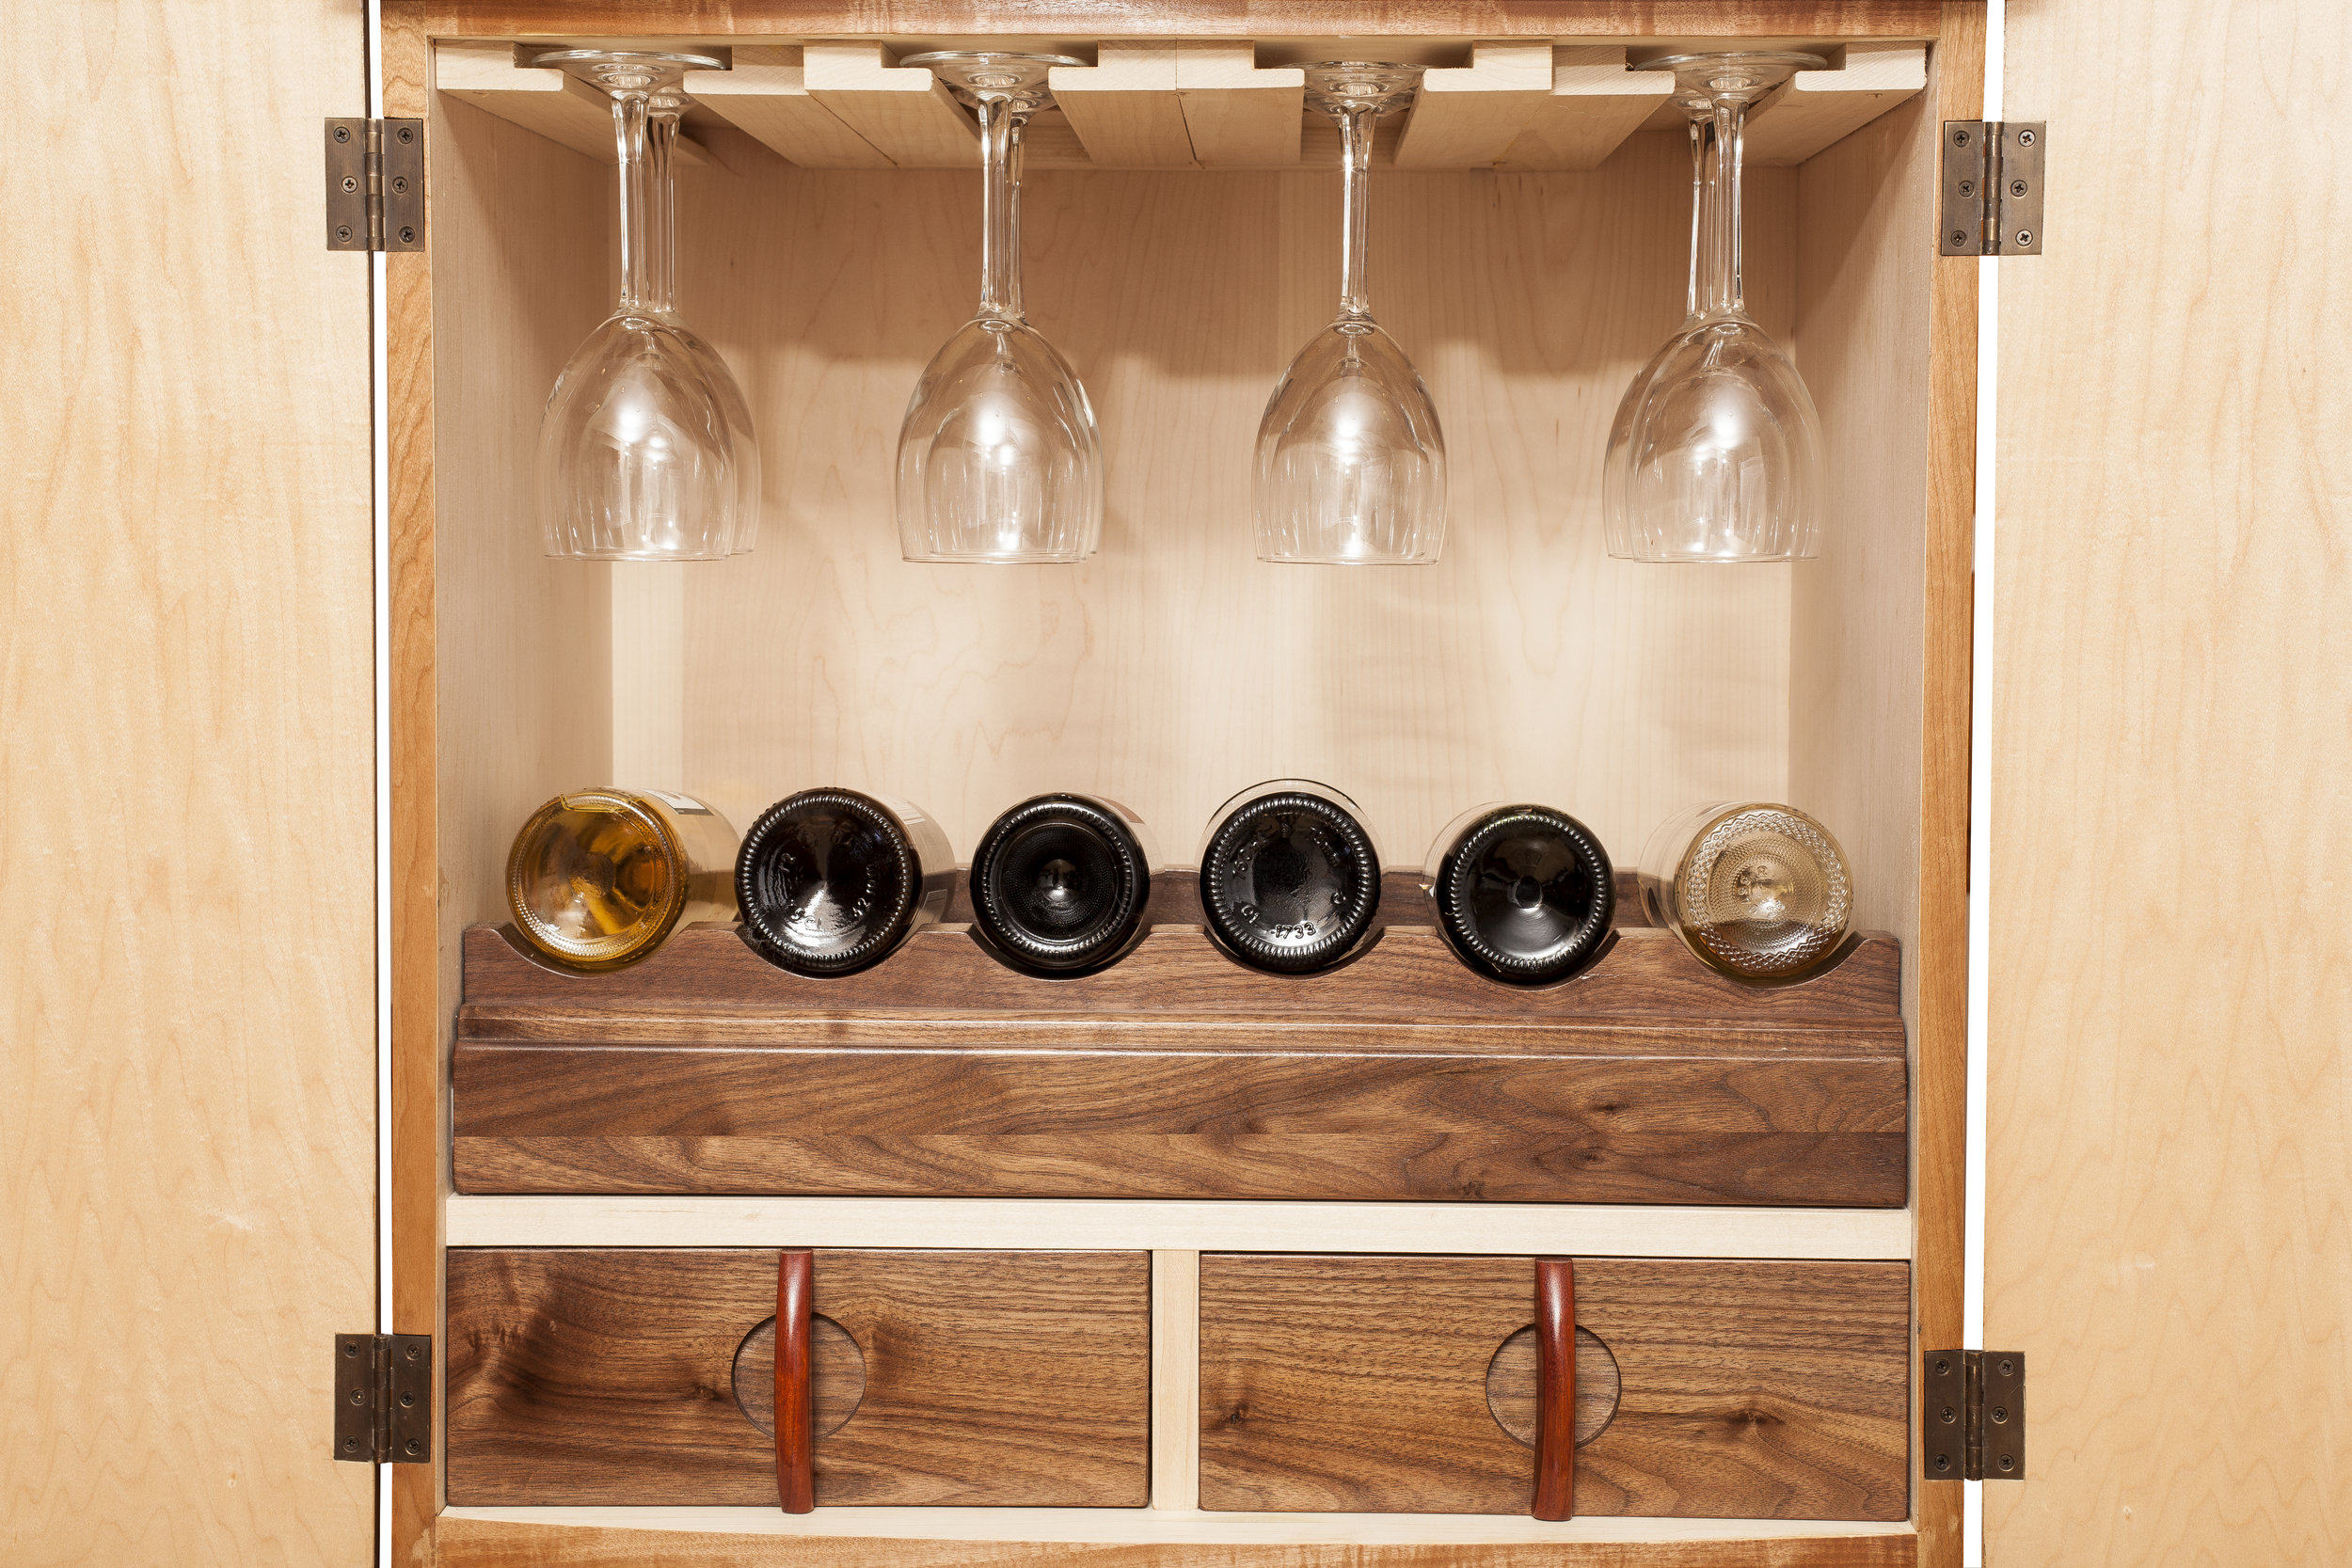 Wine shelf slides out for easier viewing.